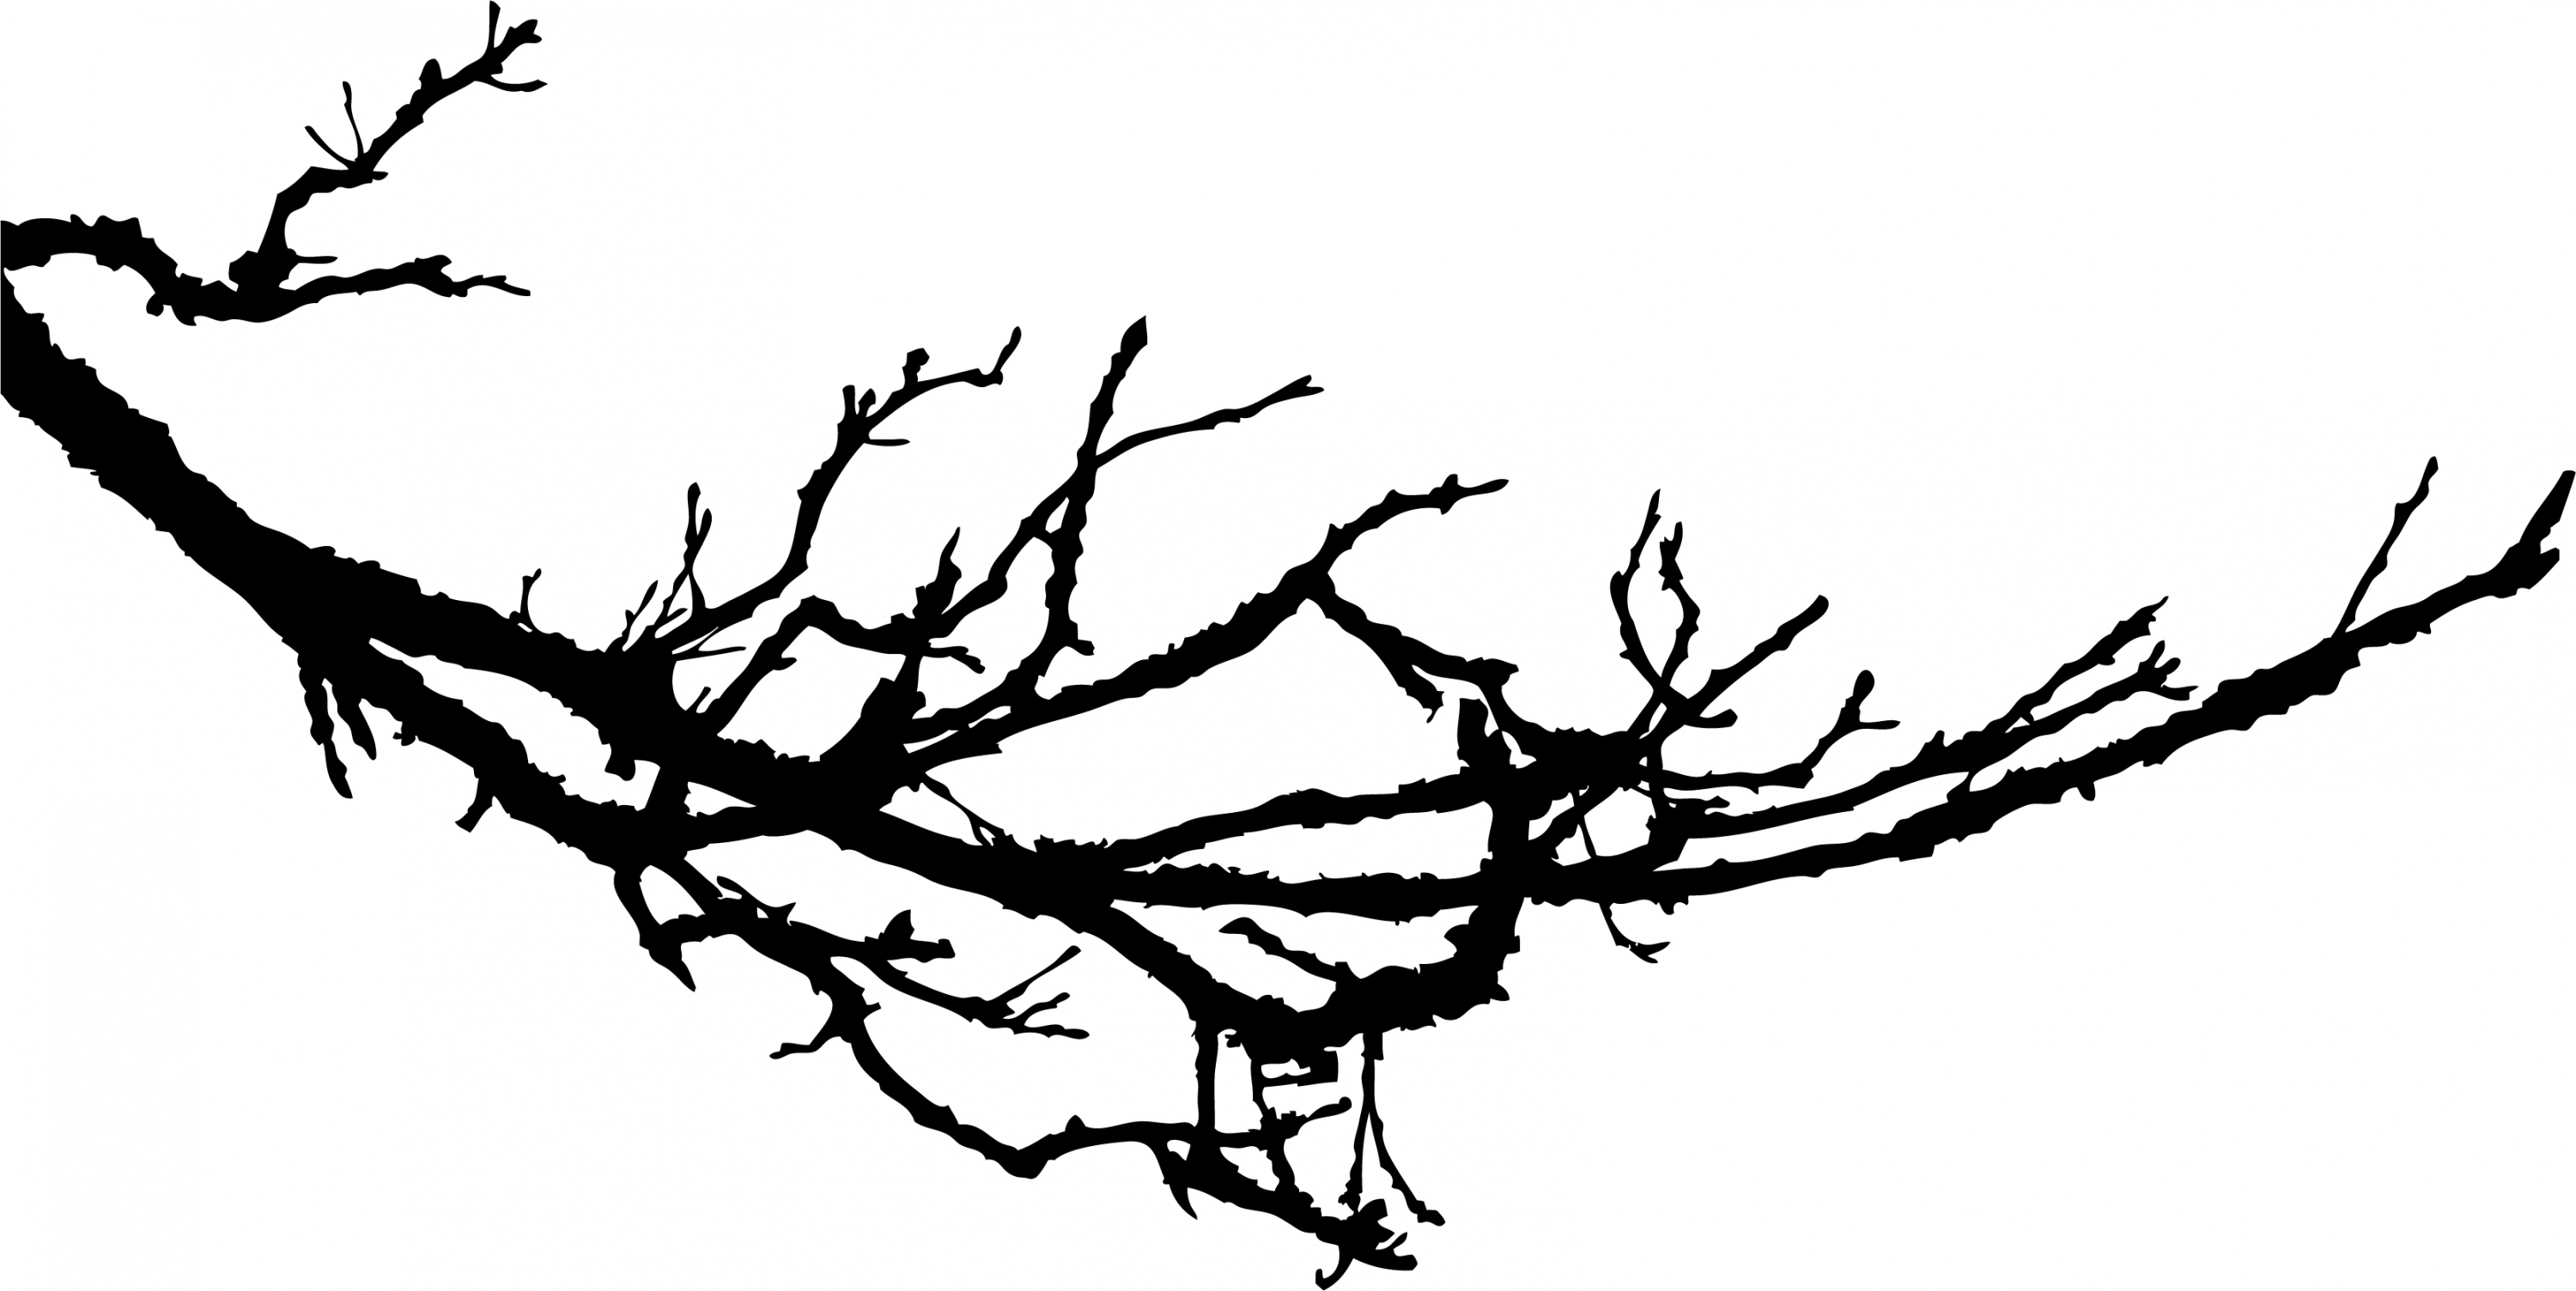 Free Simple Tree Branch Silhouette, Download Free Clip Art.